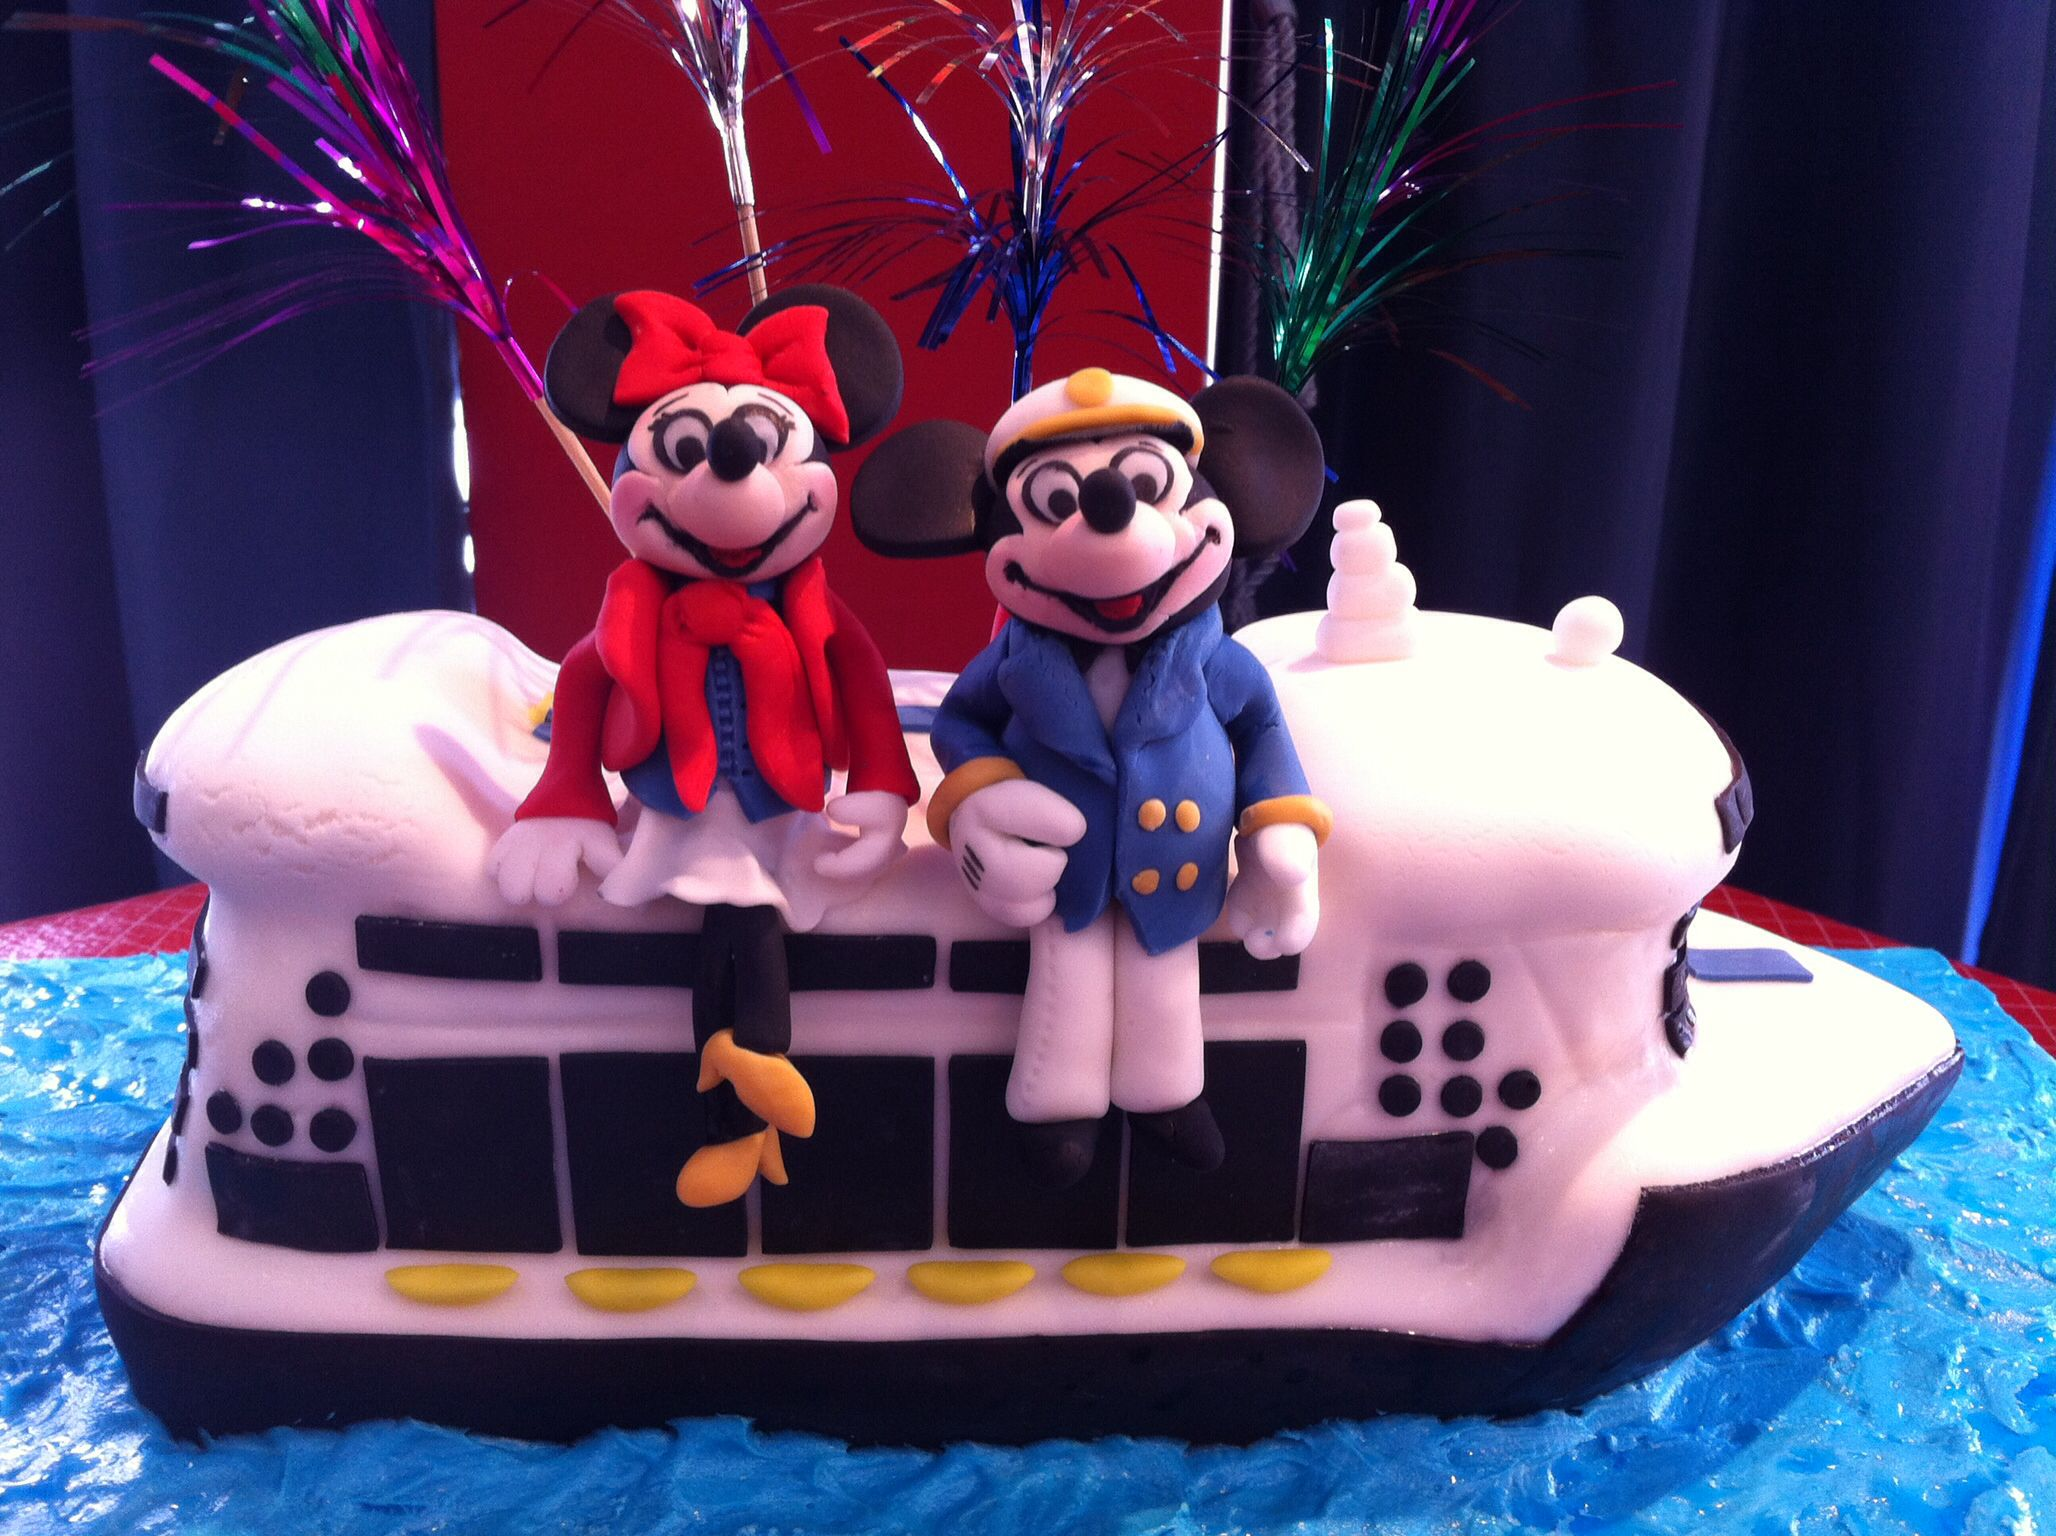 Mickey Minnie Mouse on Disney Cruise ship cake Cakes by Alisa